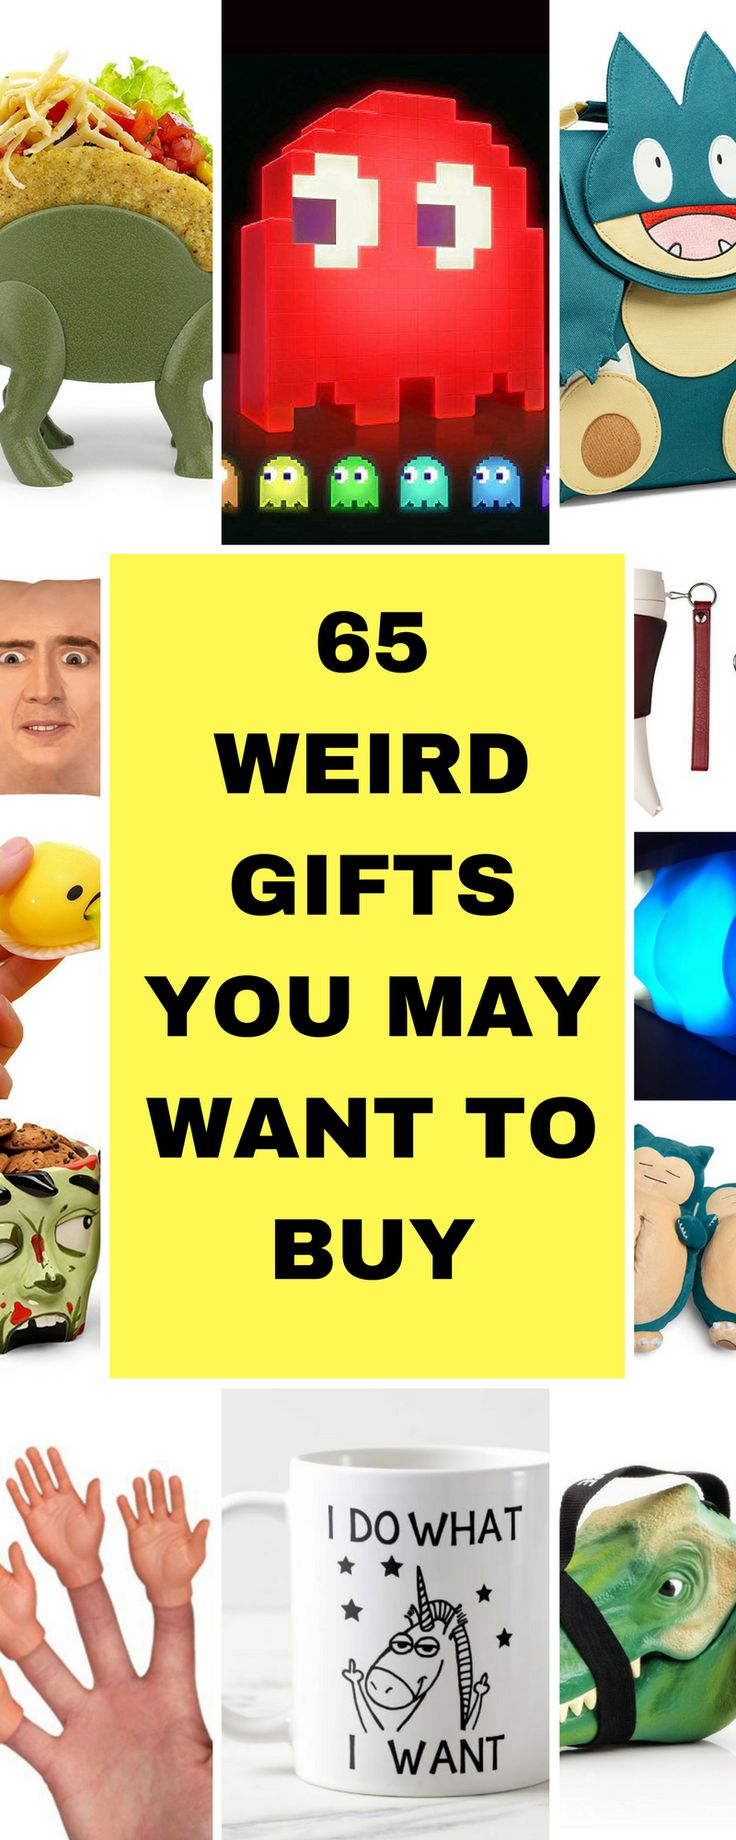 65 Weird Gifts You May Want To Buy Weird gifts, Geek